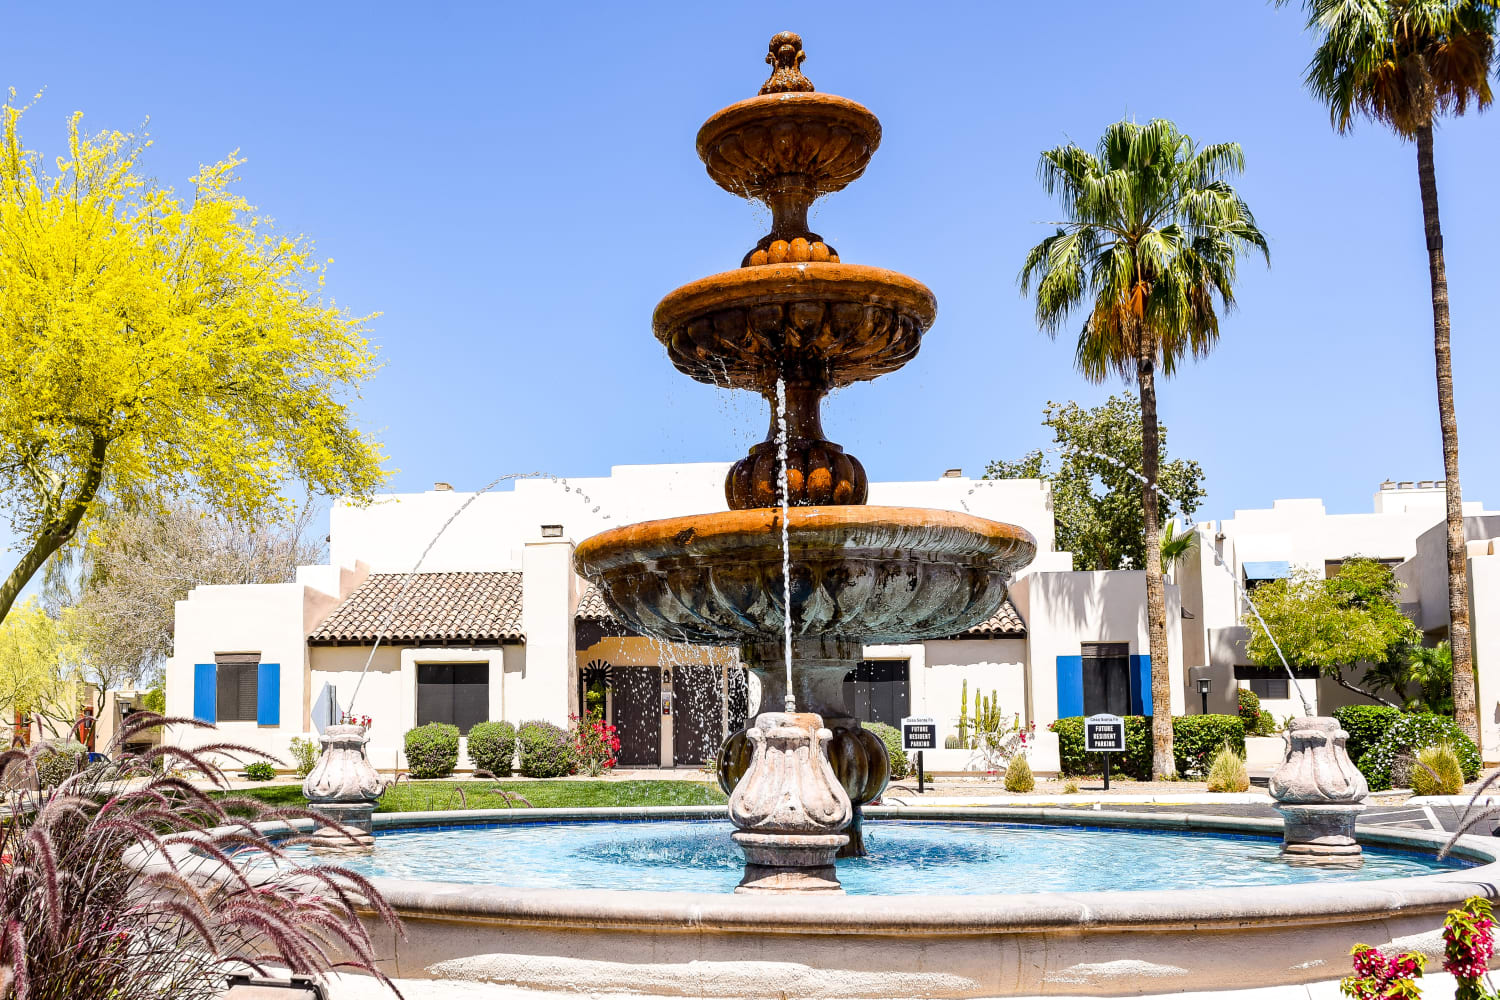 Fountain at Casa Santa Fe Apartments in Scottsdale, Arizona